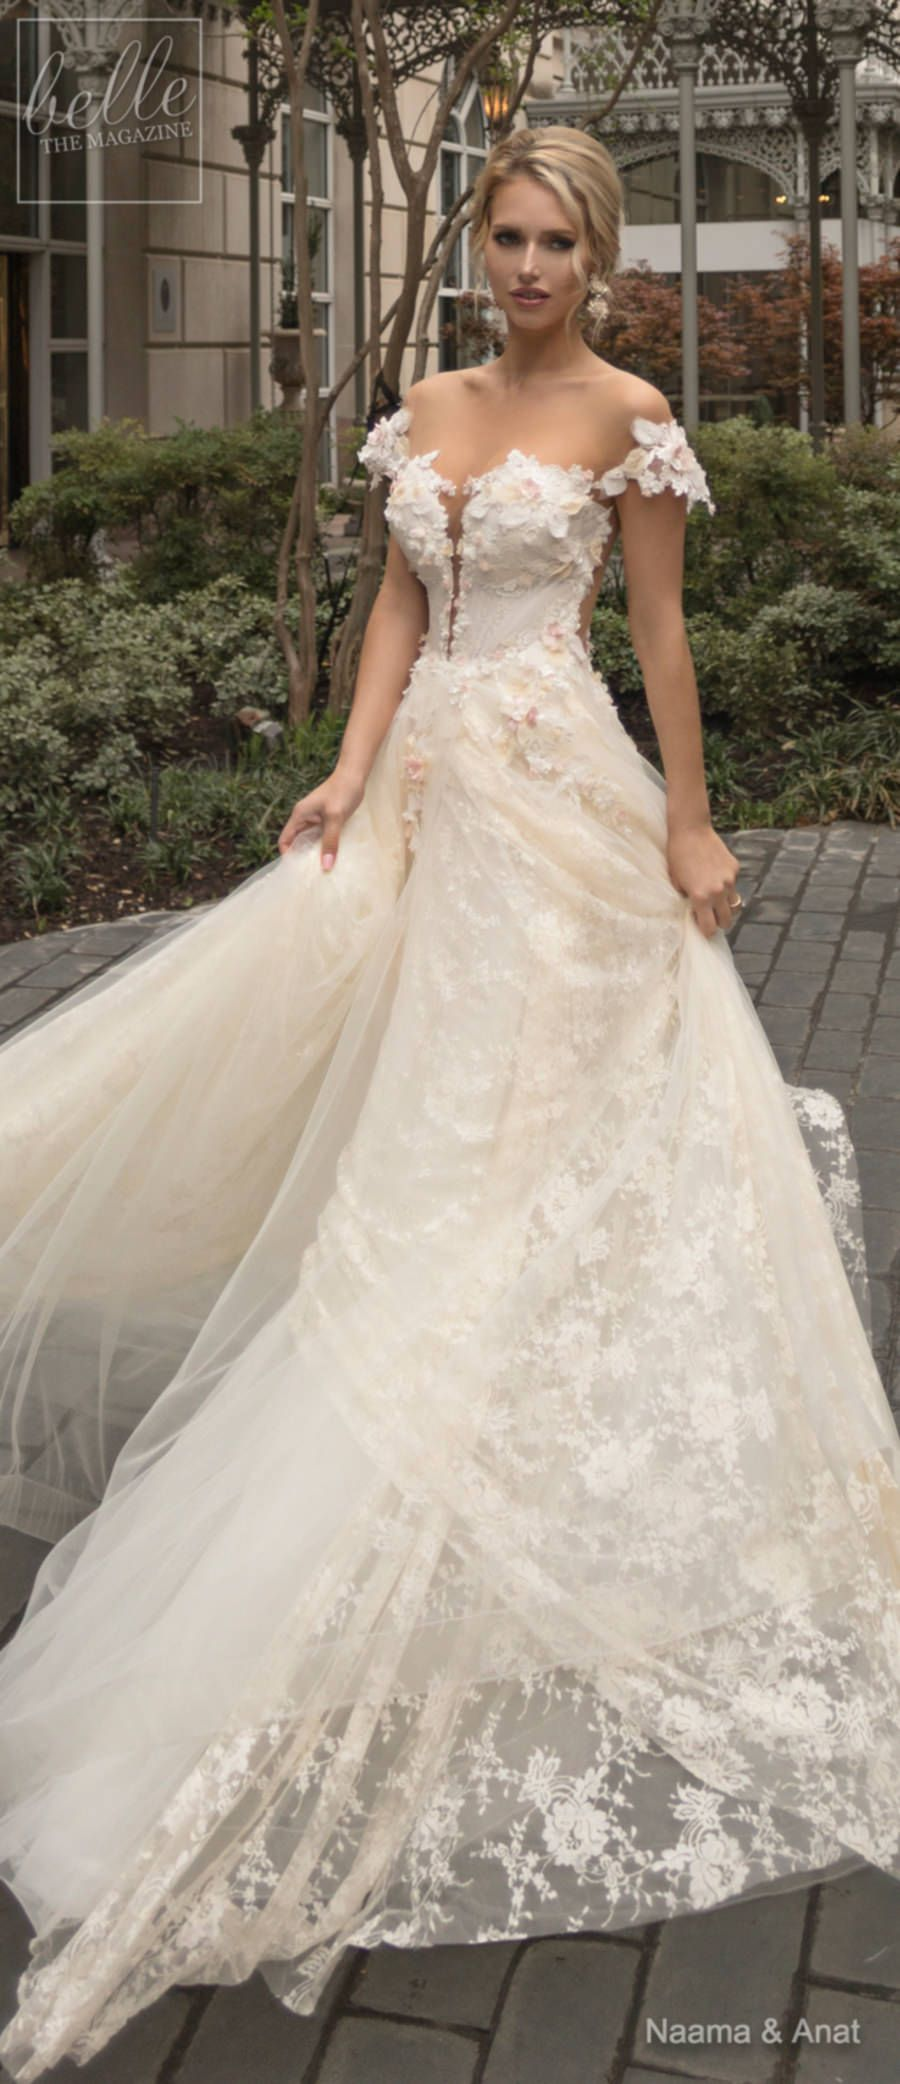 Naama and Anat Wedding Dress Collection 2019: Dancing Up the Aisle ...